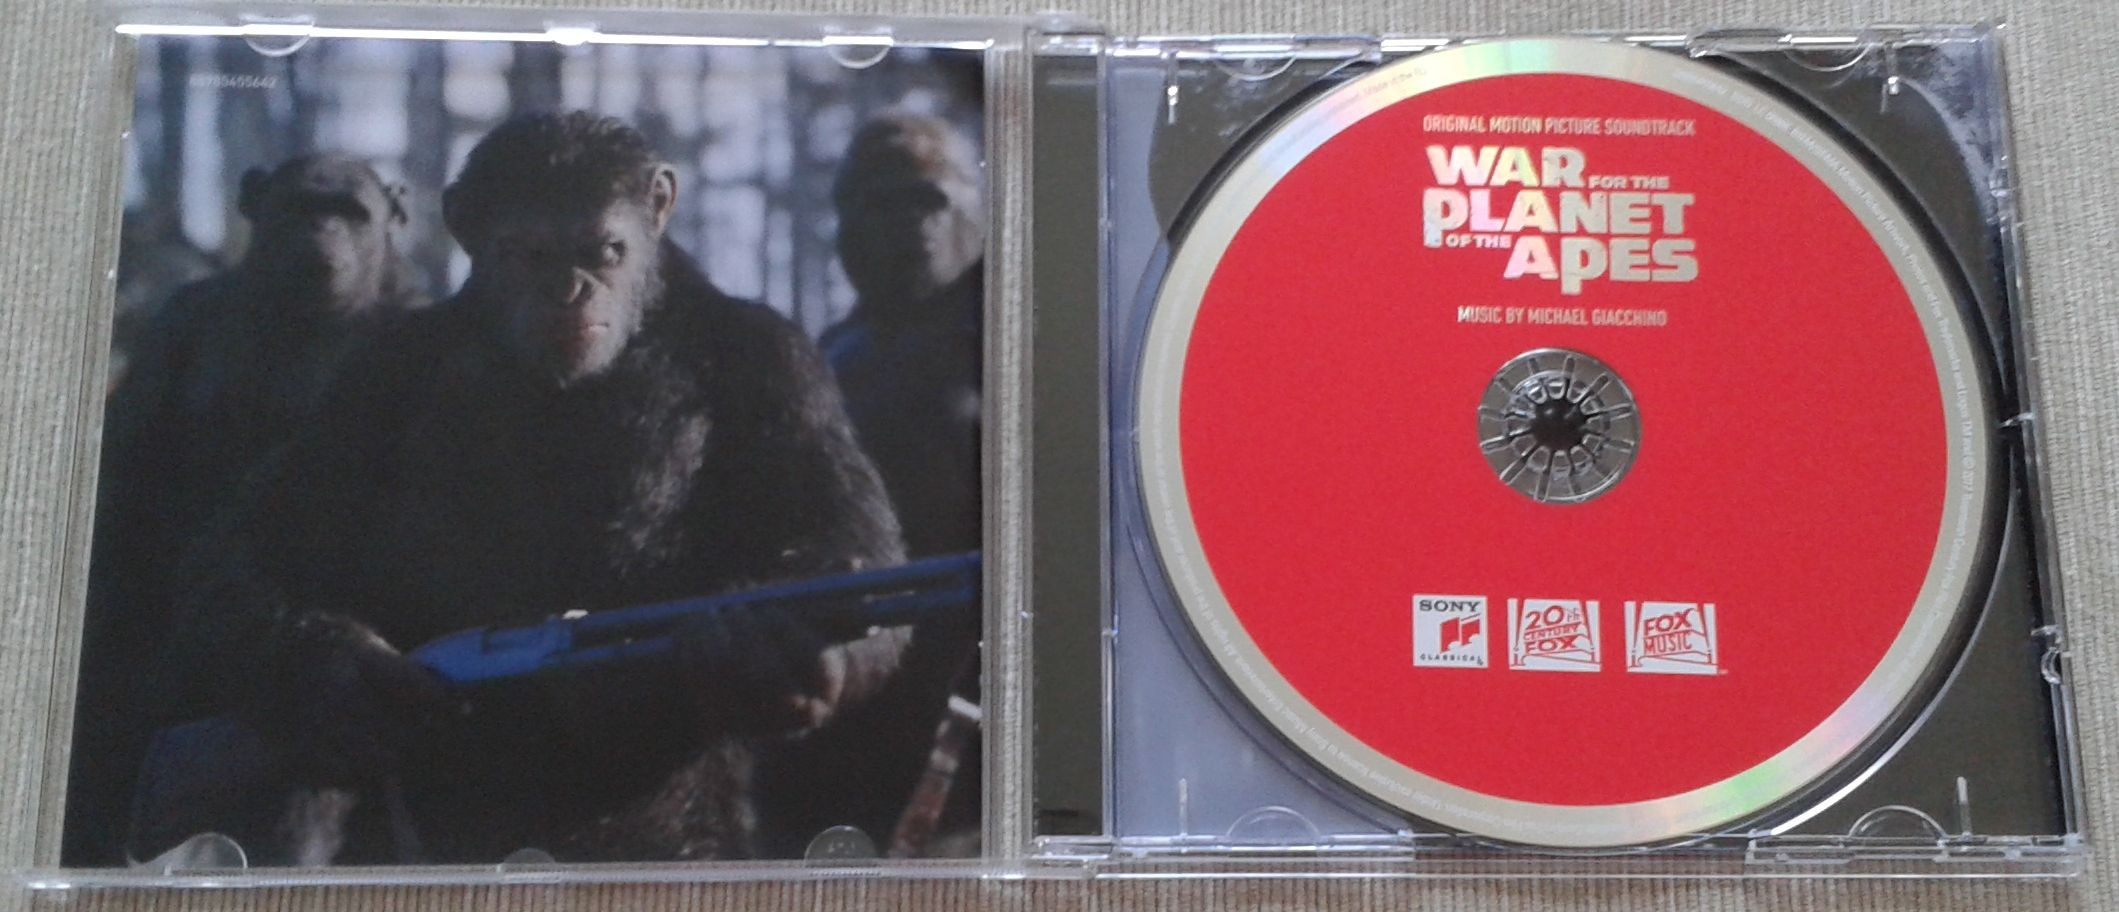 3. War for the Planet of the Apes środek z płytą.jpg